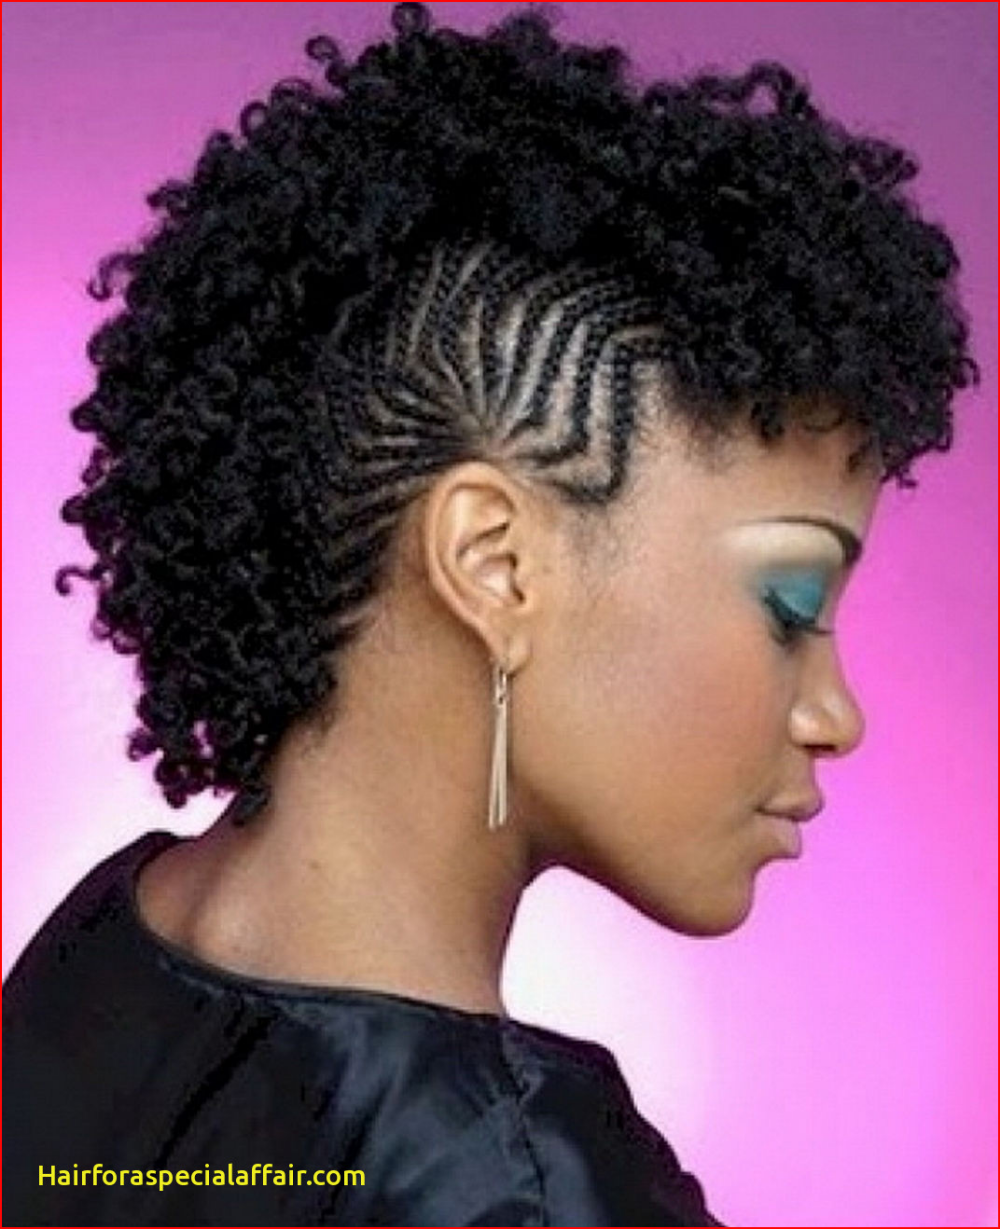 20 Nigerian Natural Hair Styles To Keep Your Hair Healthy Braided Mohawk Hairstyles Hair Styles Mohawk Hairstyles For Women